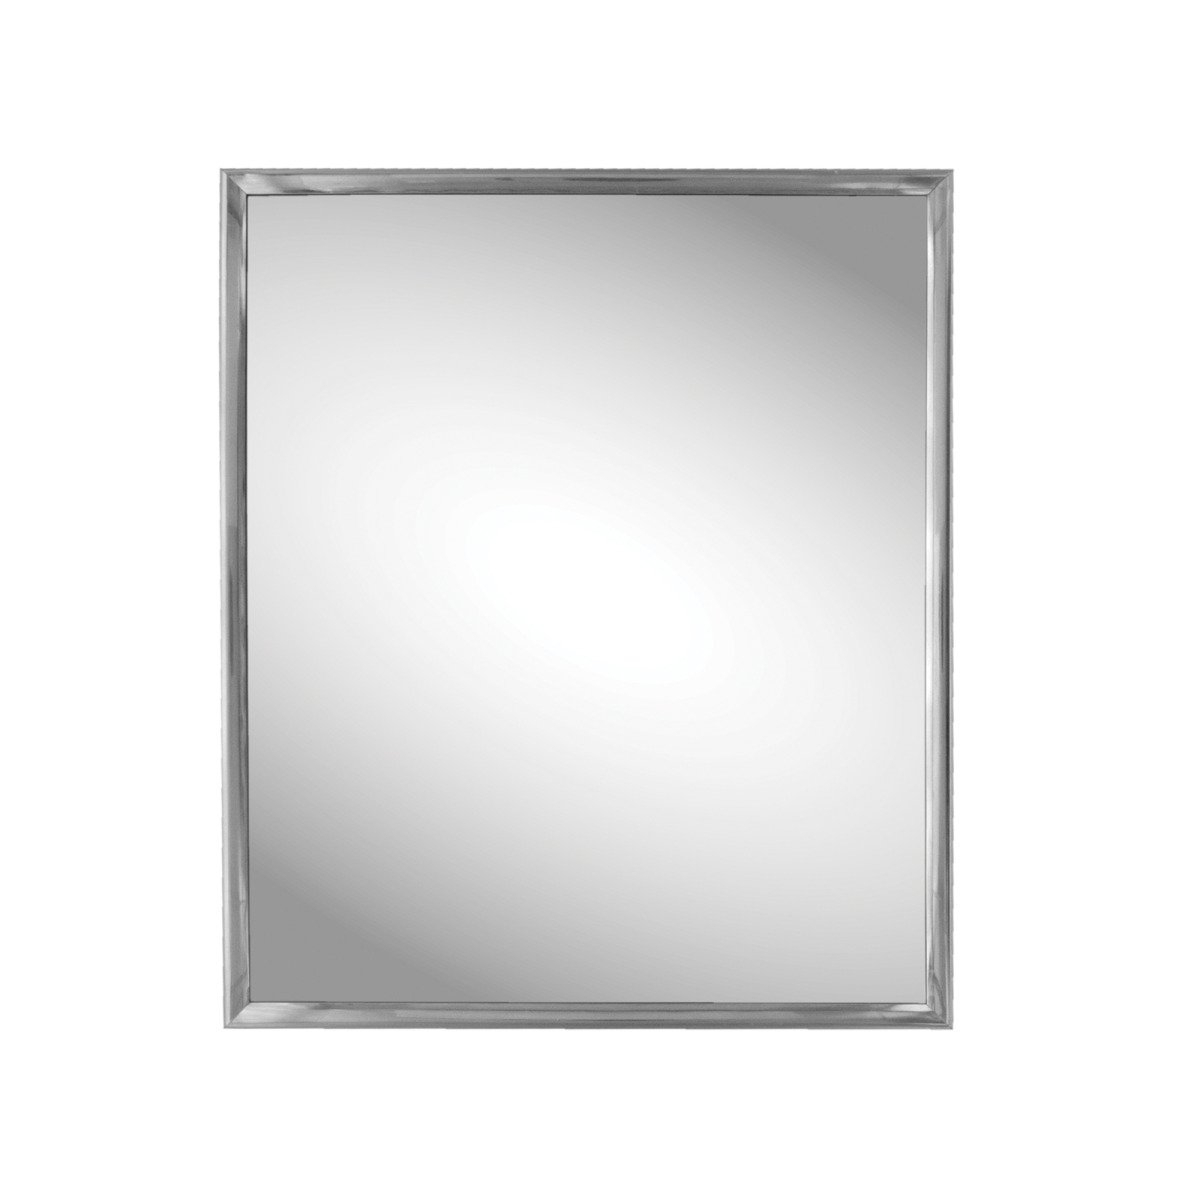 """Best And Newest Lightweight Wall Mirrors Within Andalus Wall Mirror With Silver Frame (2 Pack), 10"""" X 12"""" Inches, Includes  Picture Hanging Kit, Lightweight And Easy To Install (View 2 of 20)"""